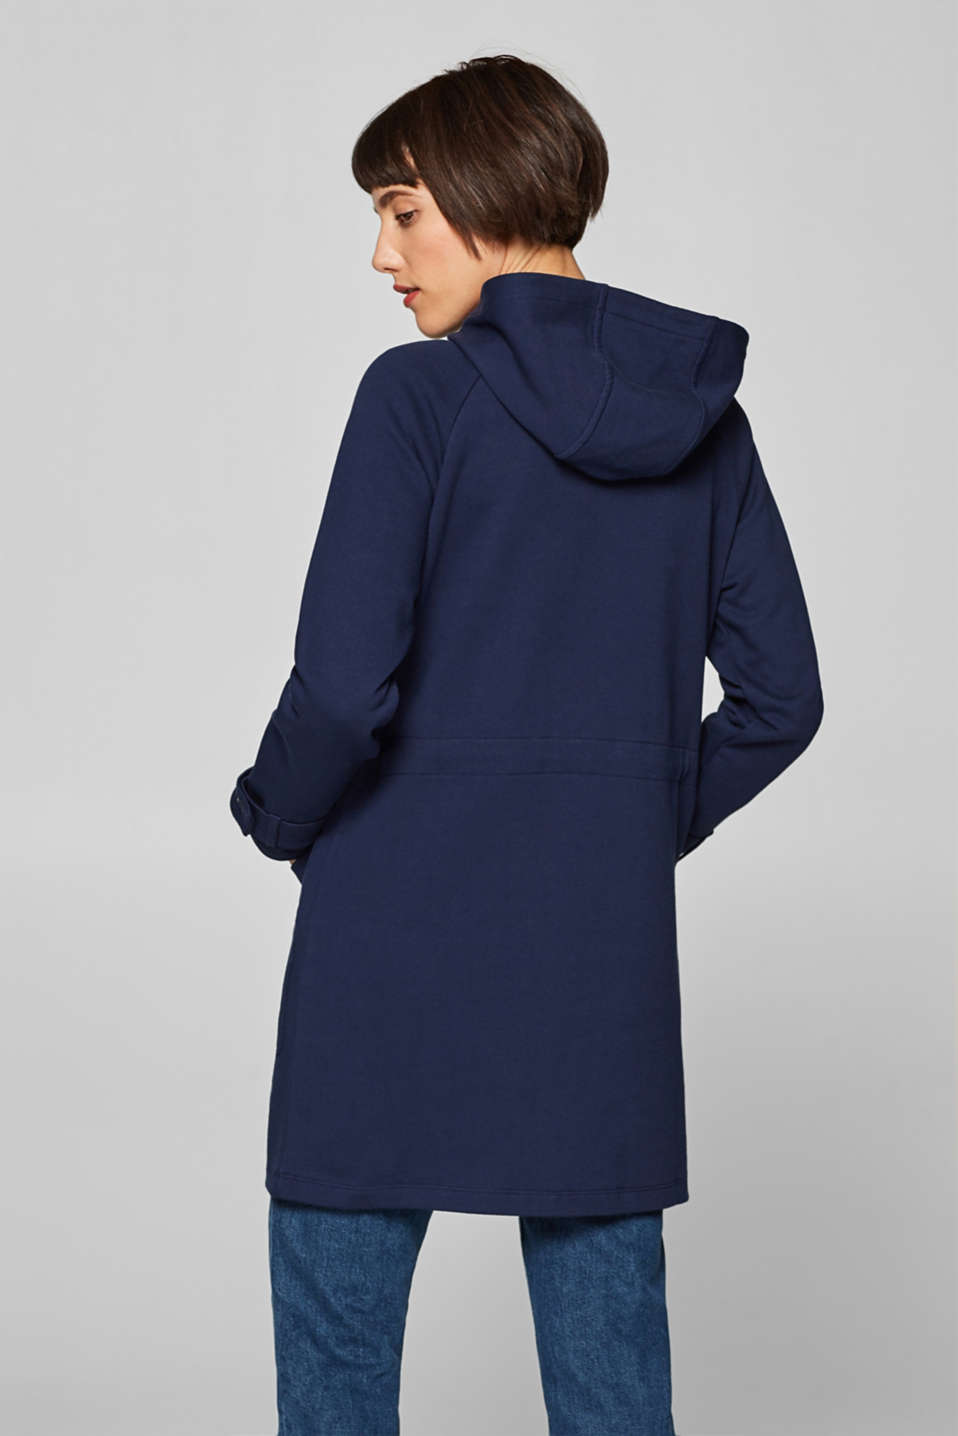 Sweatshirt parka with hood, 100% cotton, NAVY, detail image number 2